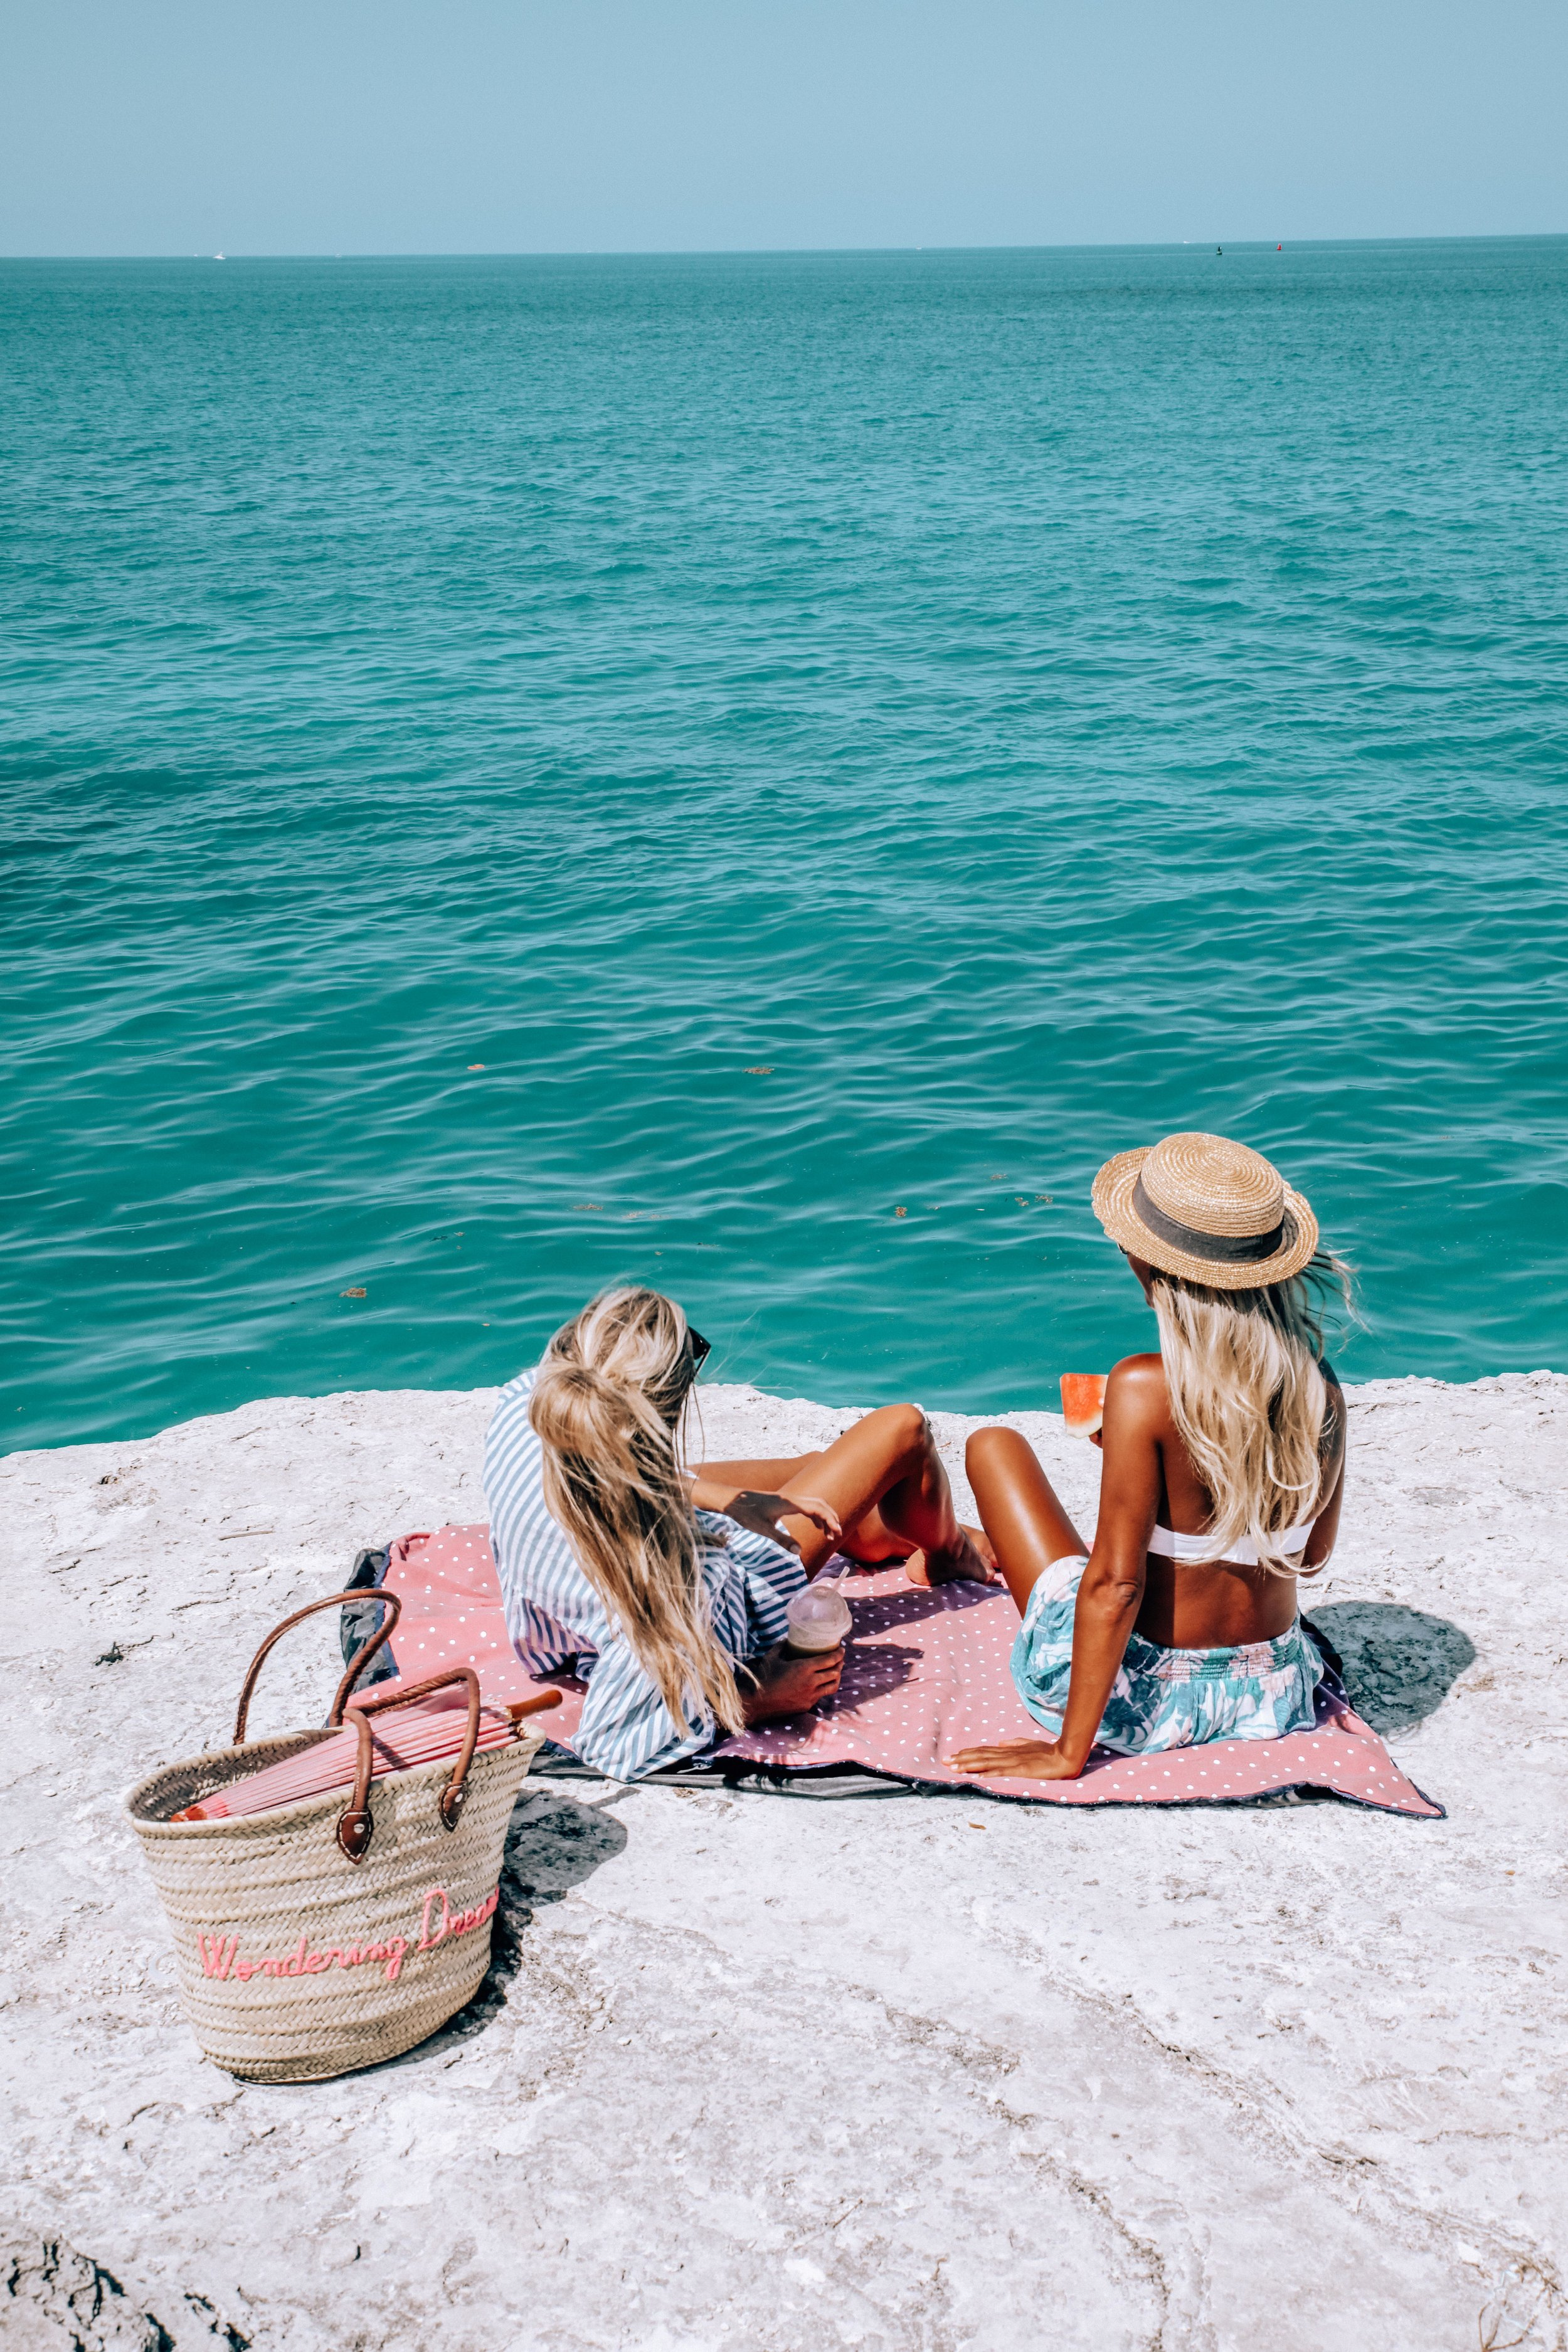 Picnic Spot - Picnic with my lovely friend @rachelsawden - a Bermudian Blogger and photo taken by @james.doughty, a local Bermudian photographer.